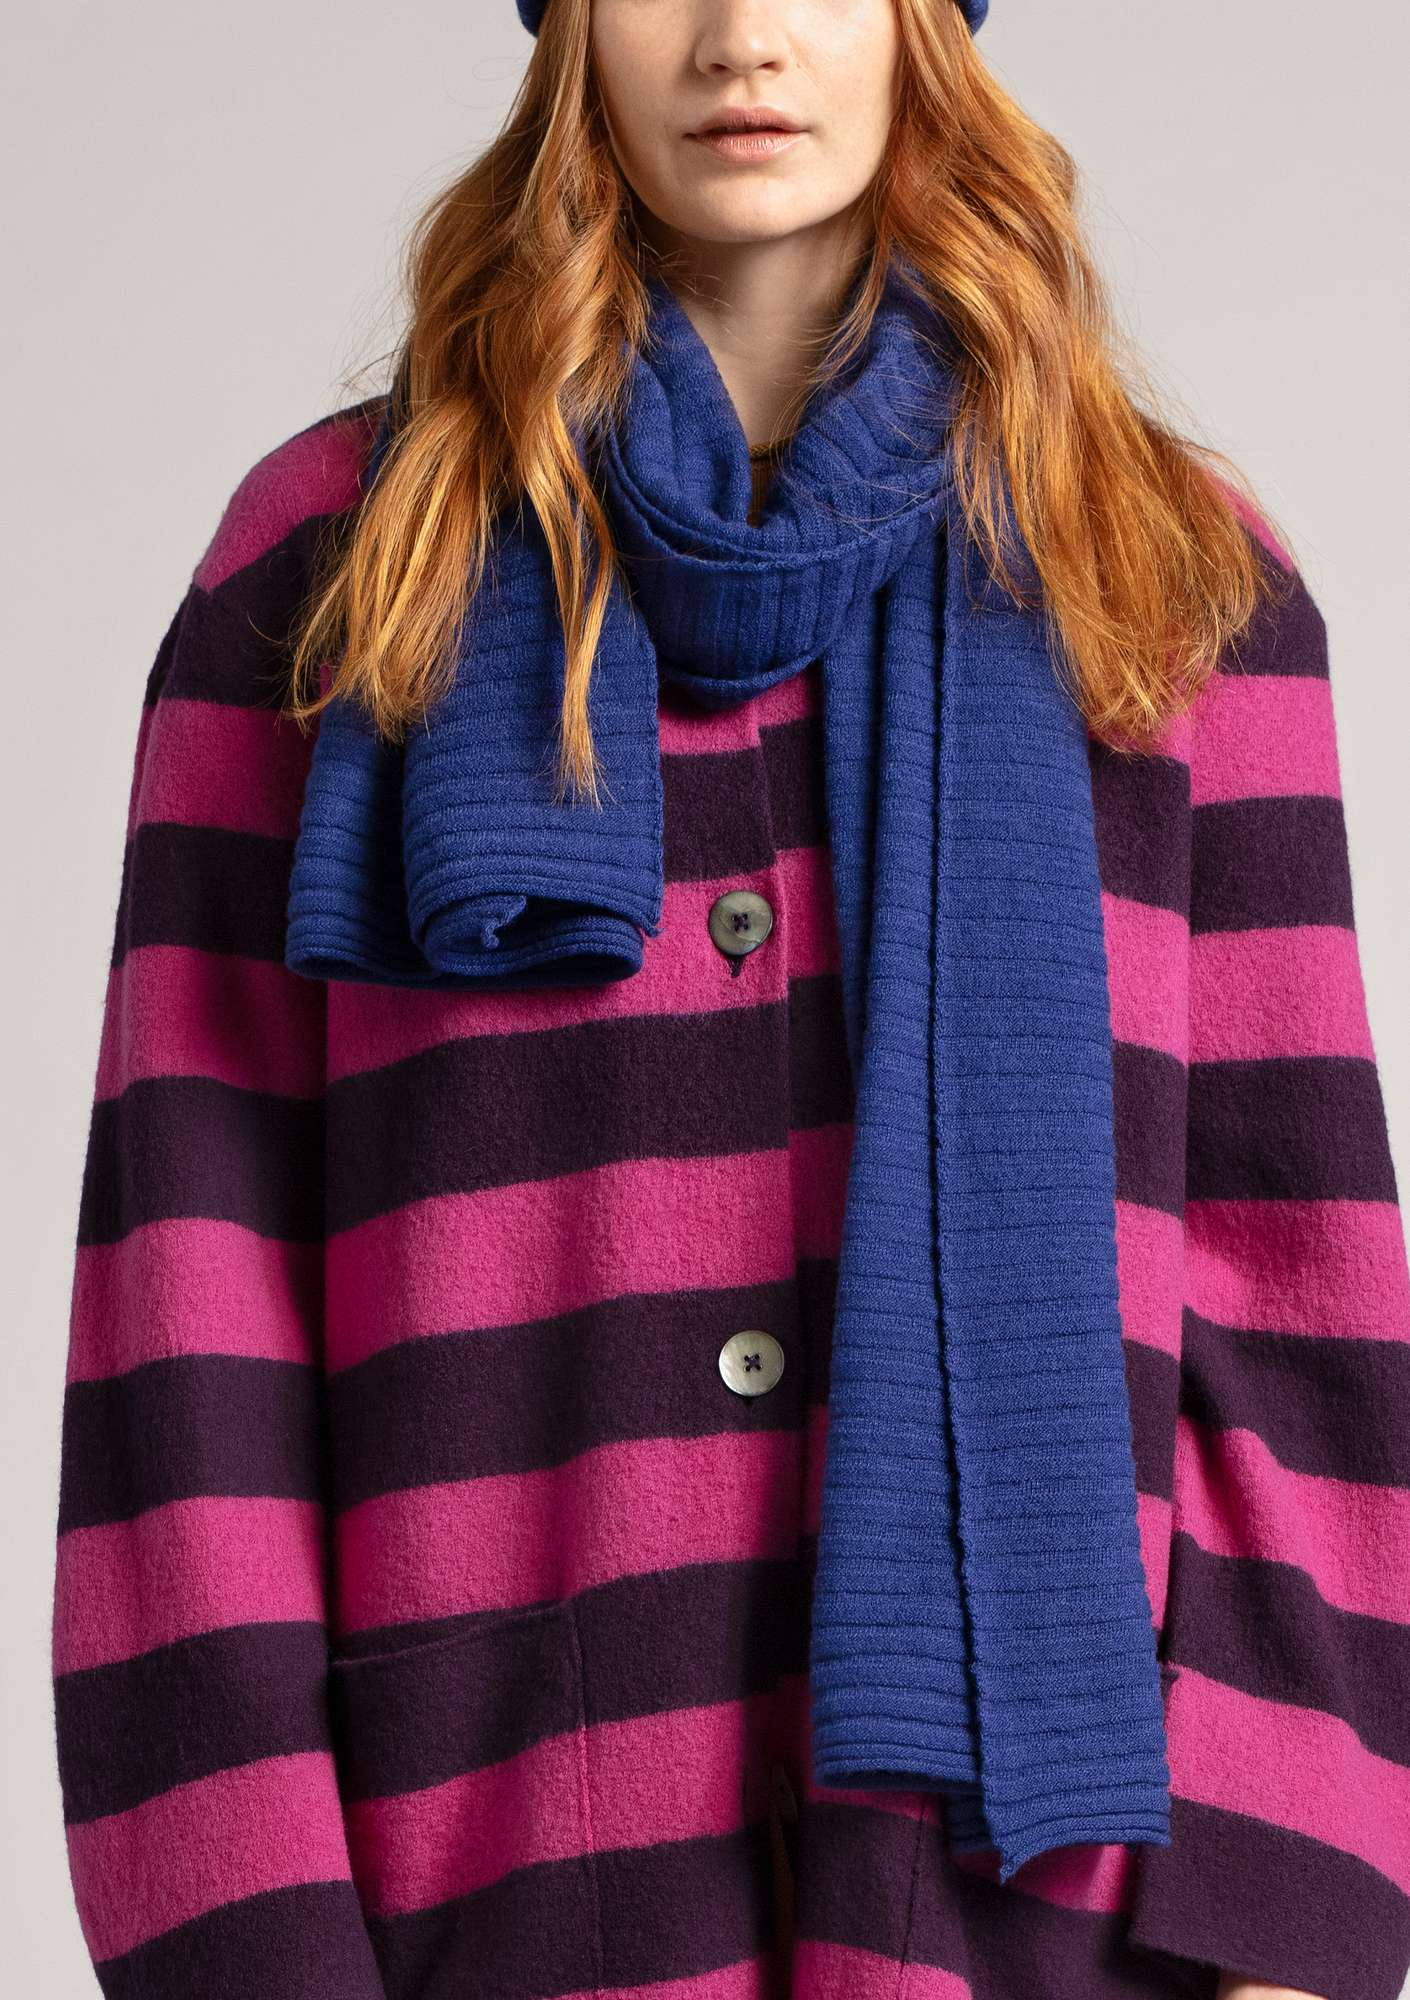 Pleated scarf violet